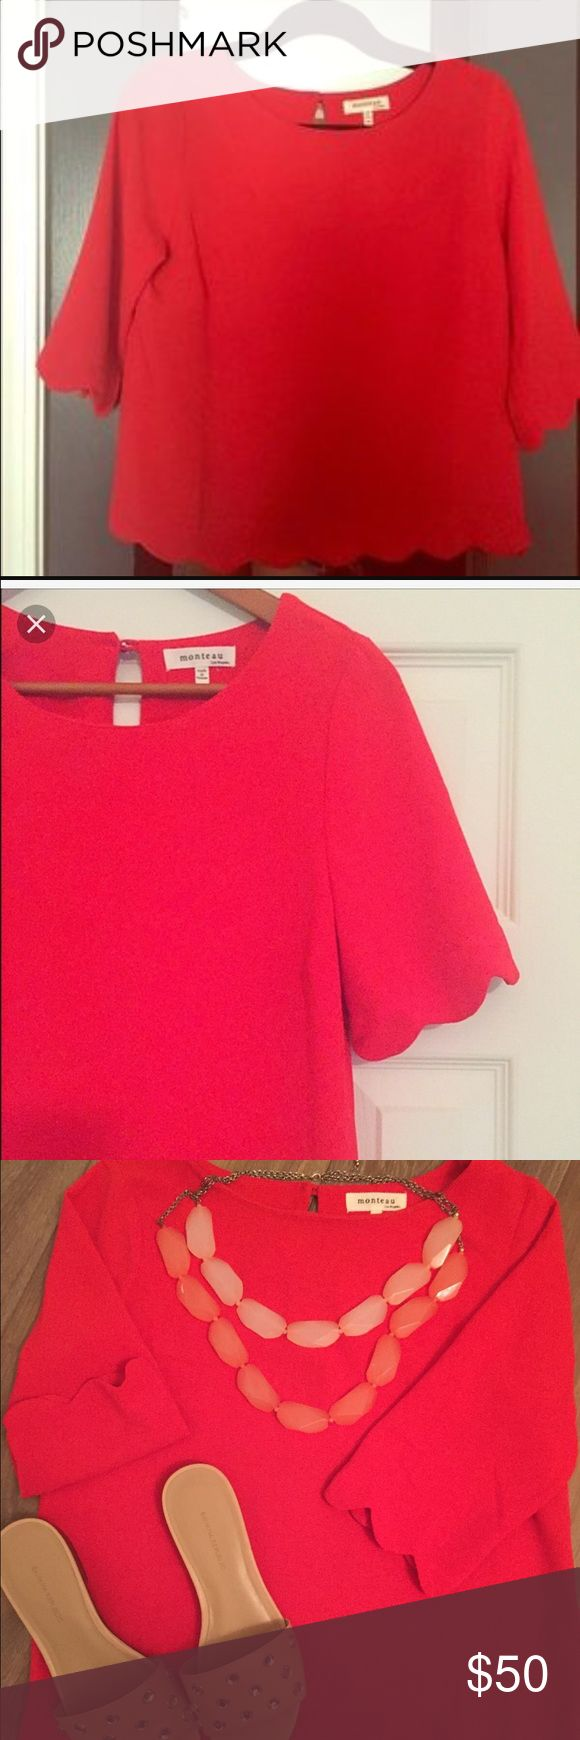 Monteau red crepe top Gorgeous red crepe top. Cute scalloped sleeves and bottom Monteau Tops Blouses